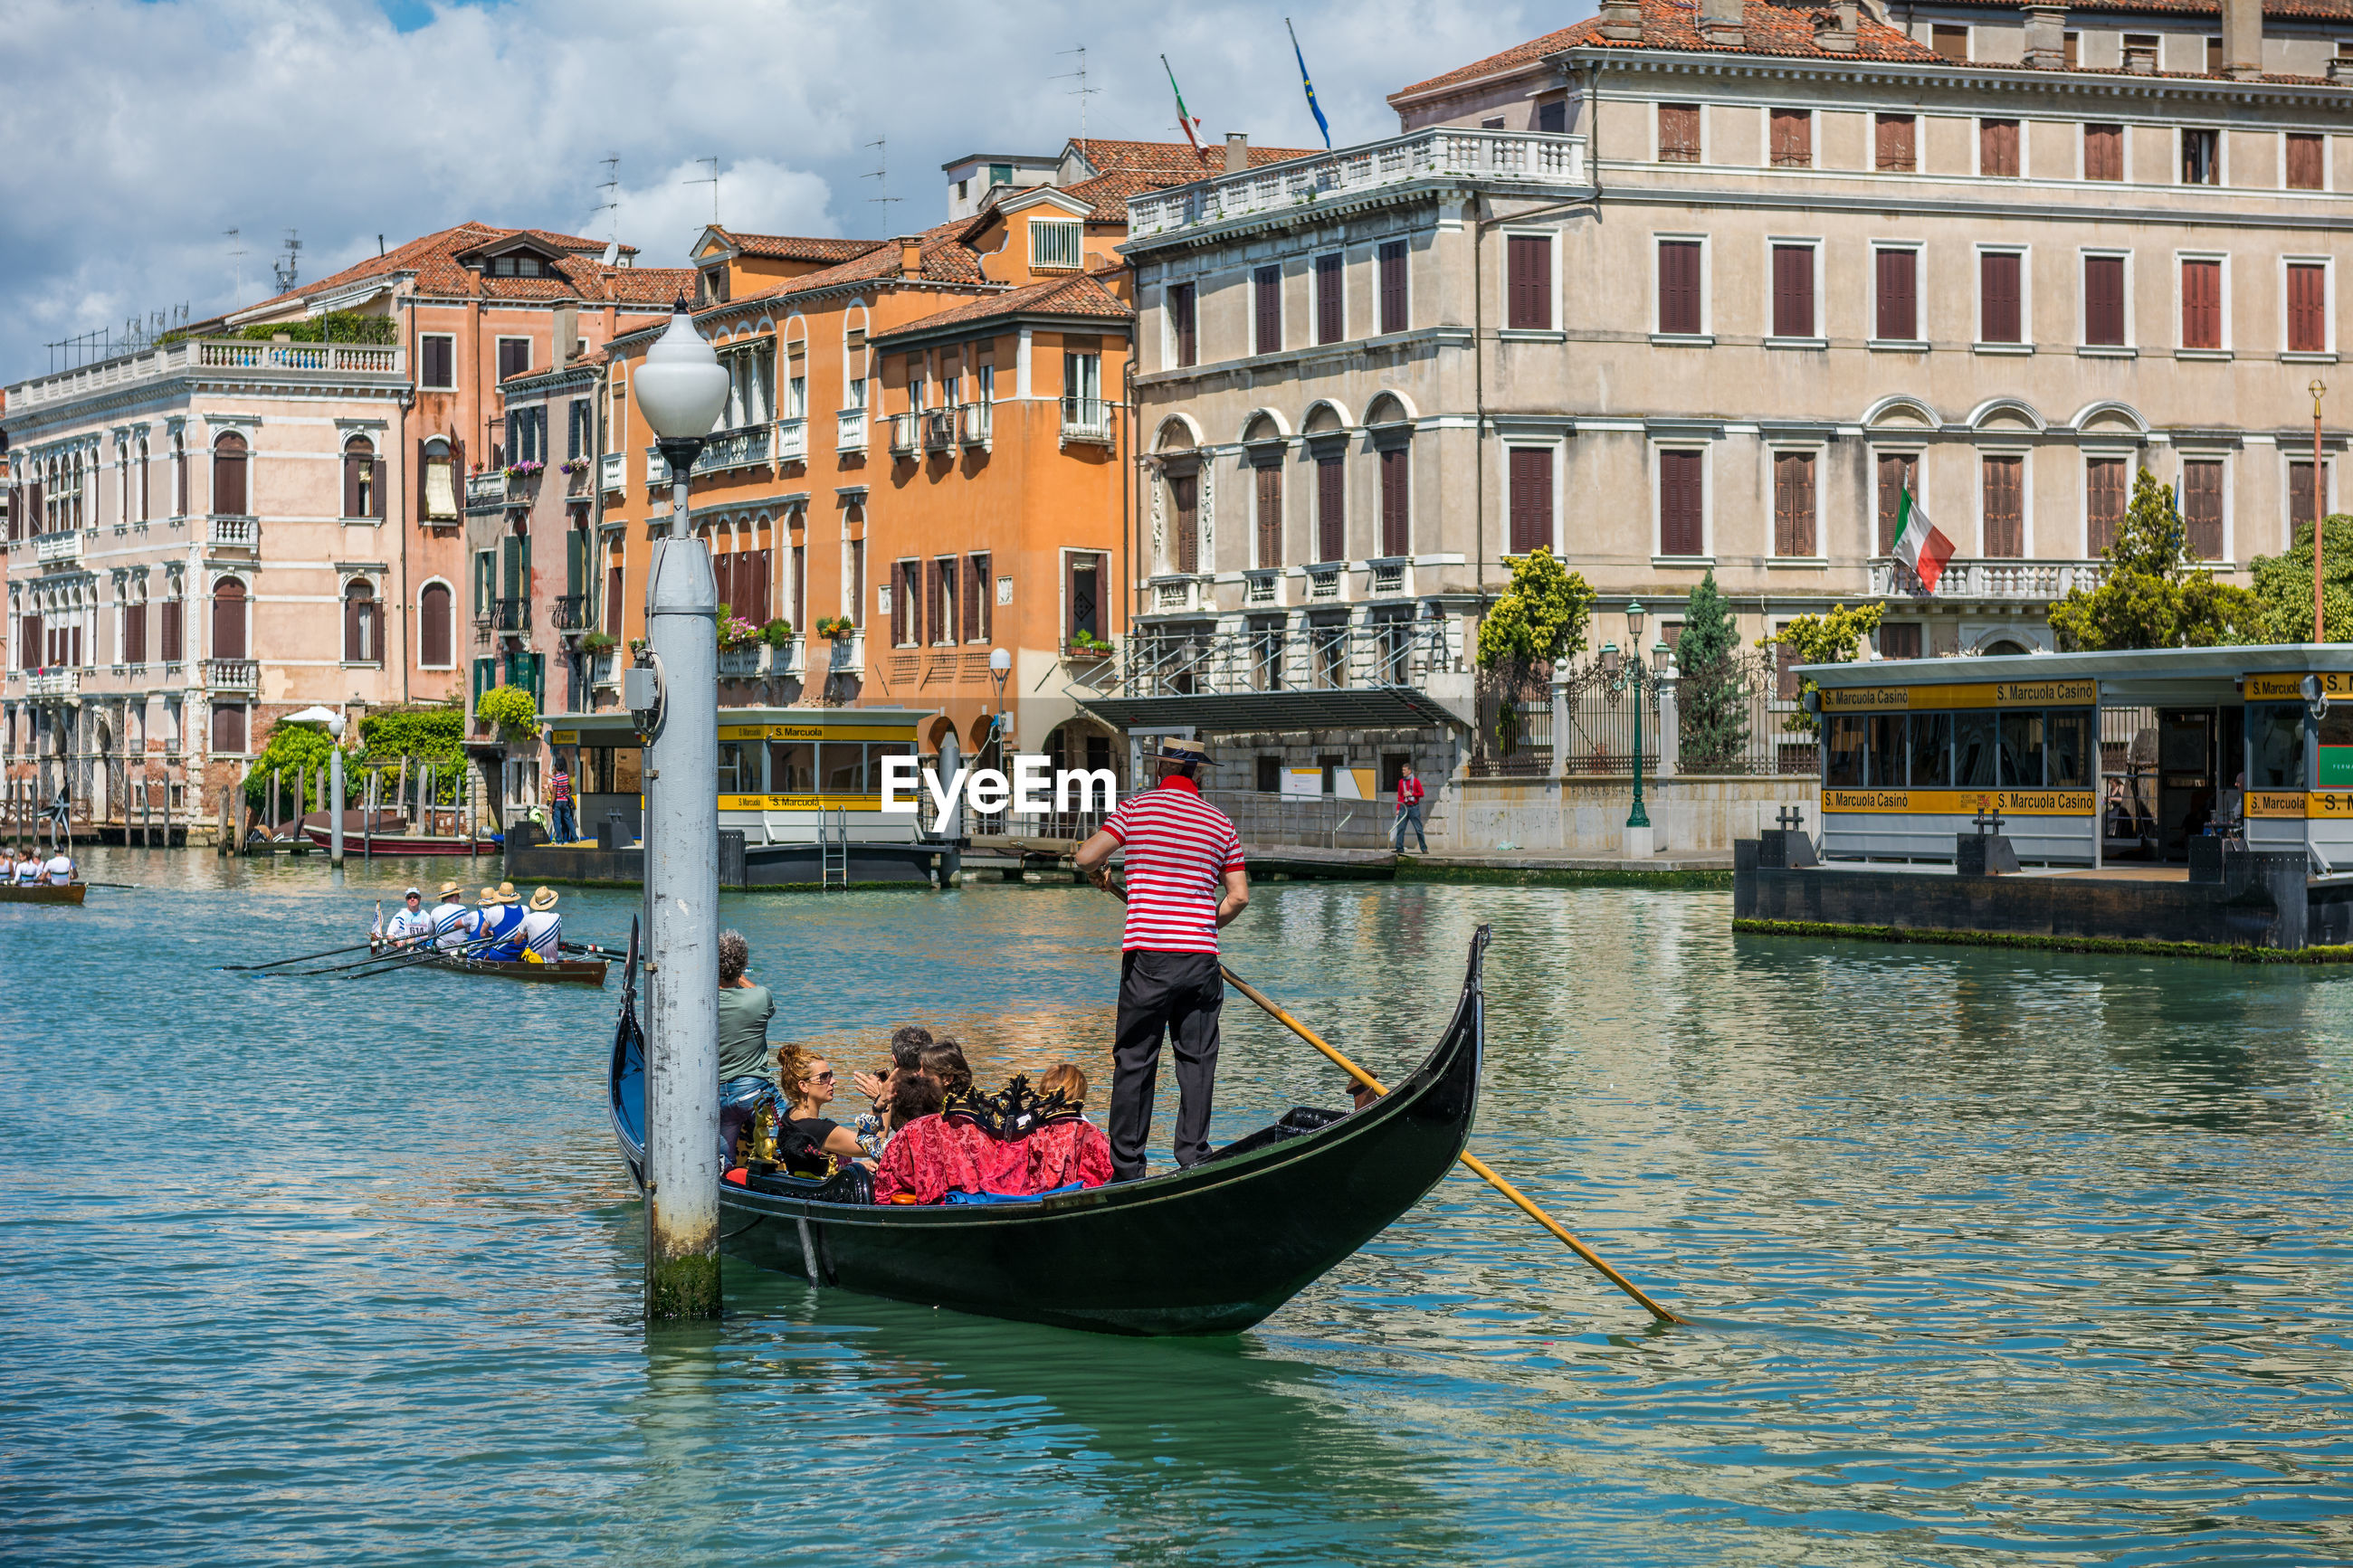 building exterior, architecture, transportation, gondola - traditional boat, built structure, real people, nautical vessel, canal, mode of transport, gondola, gondolier, men, tourism, travel destinations, day, water, women, outdoors, leisure activity, moored, vacations, large group of people, oar, rowing, city, nature, sky, young adult, adult, people